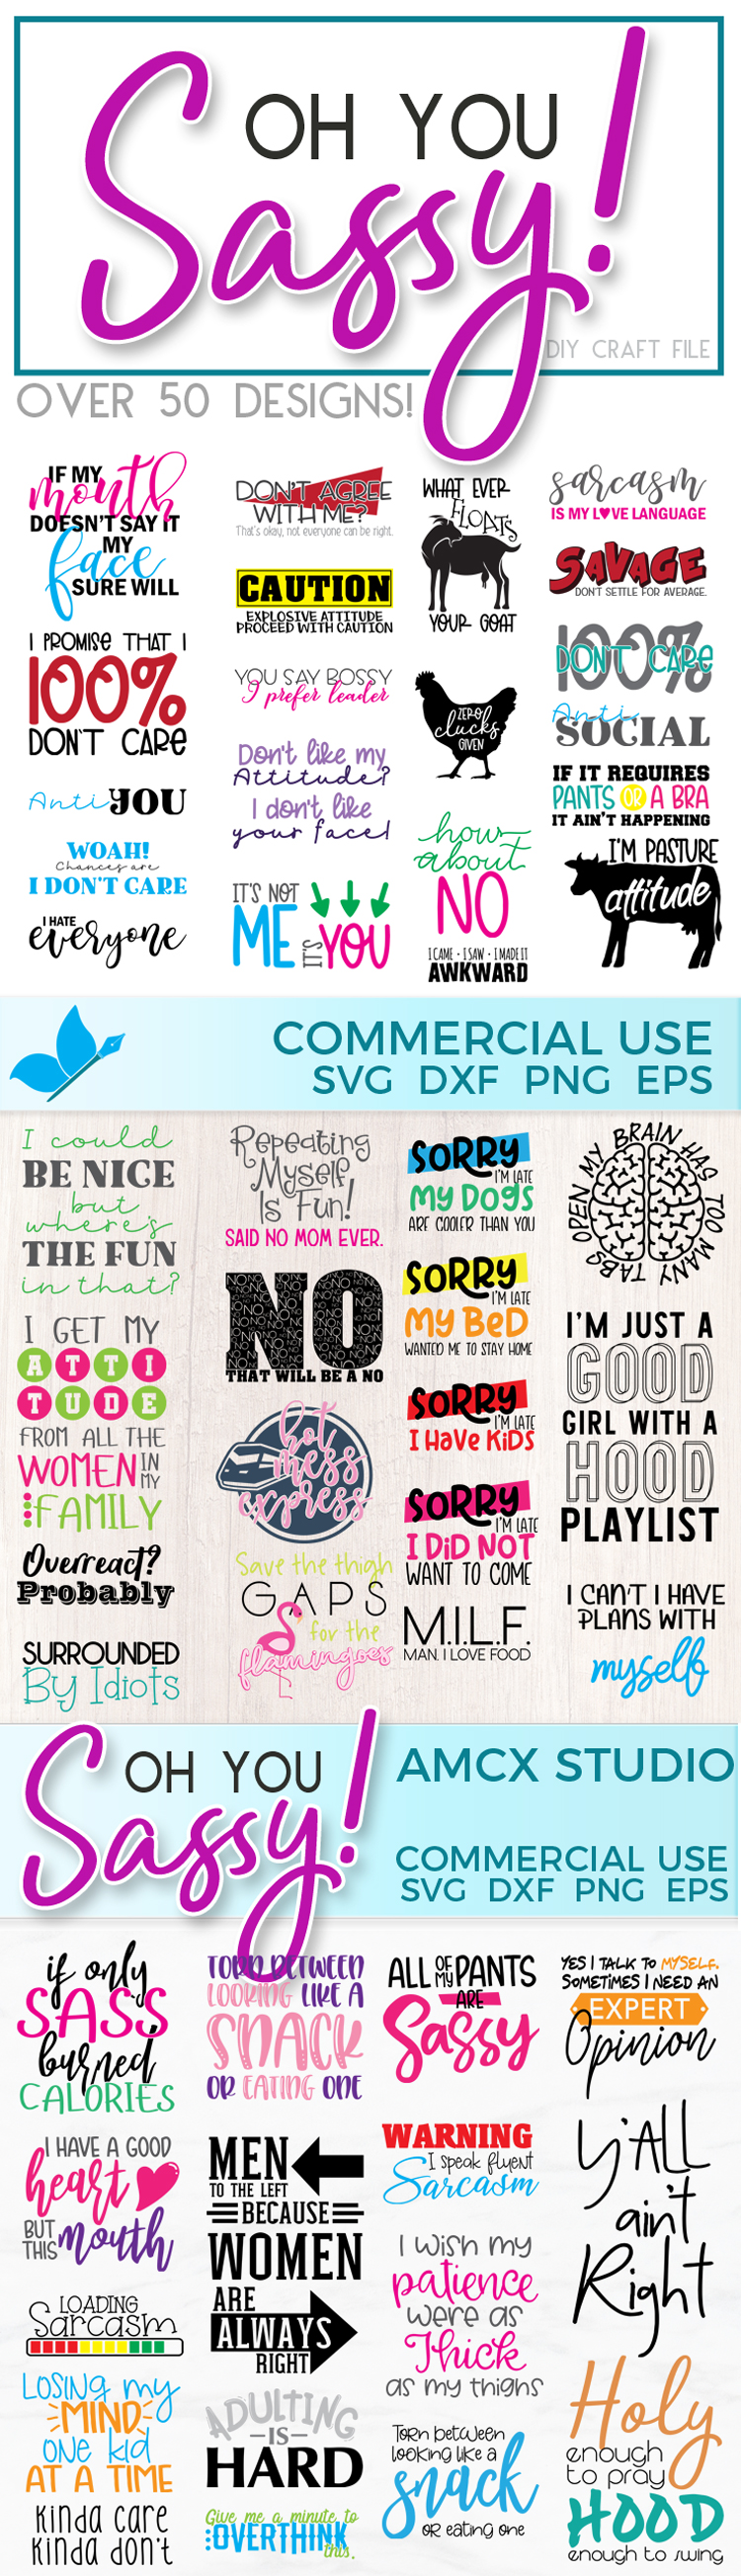 Oh you sassy! - The HUGE Quote Bundle Full of Sass example image 2